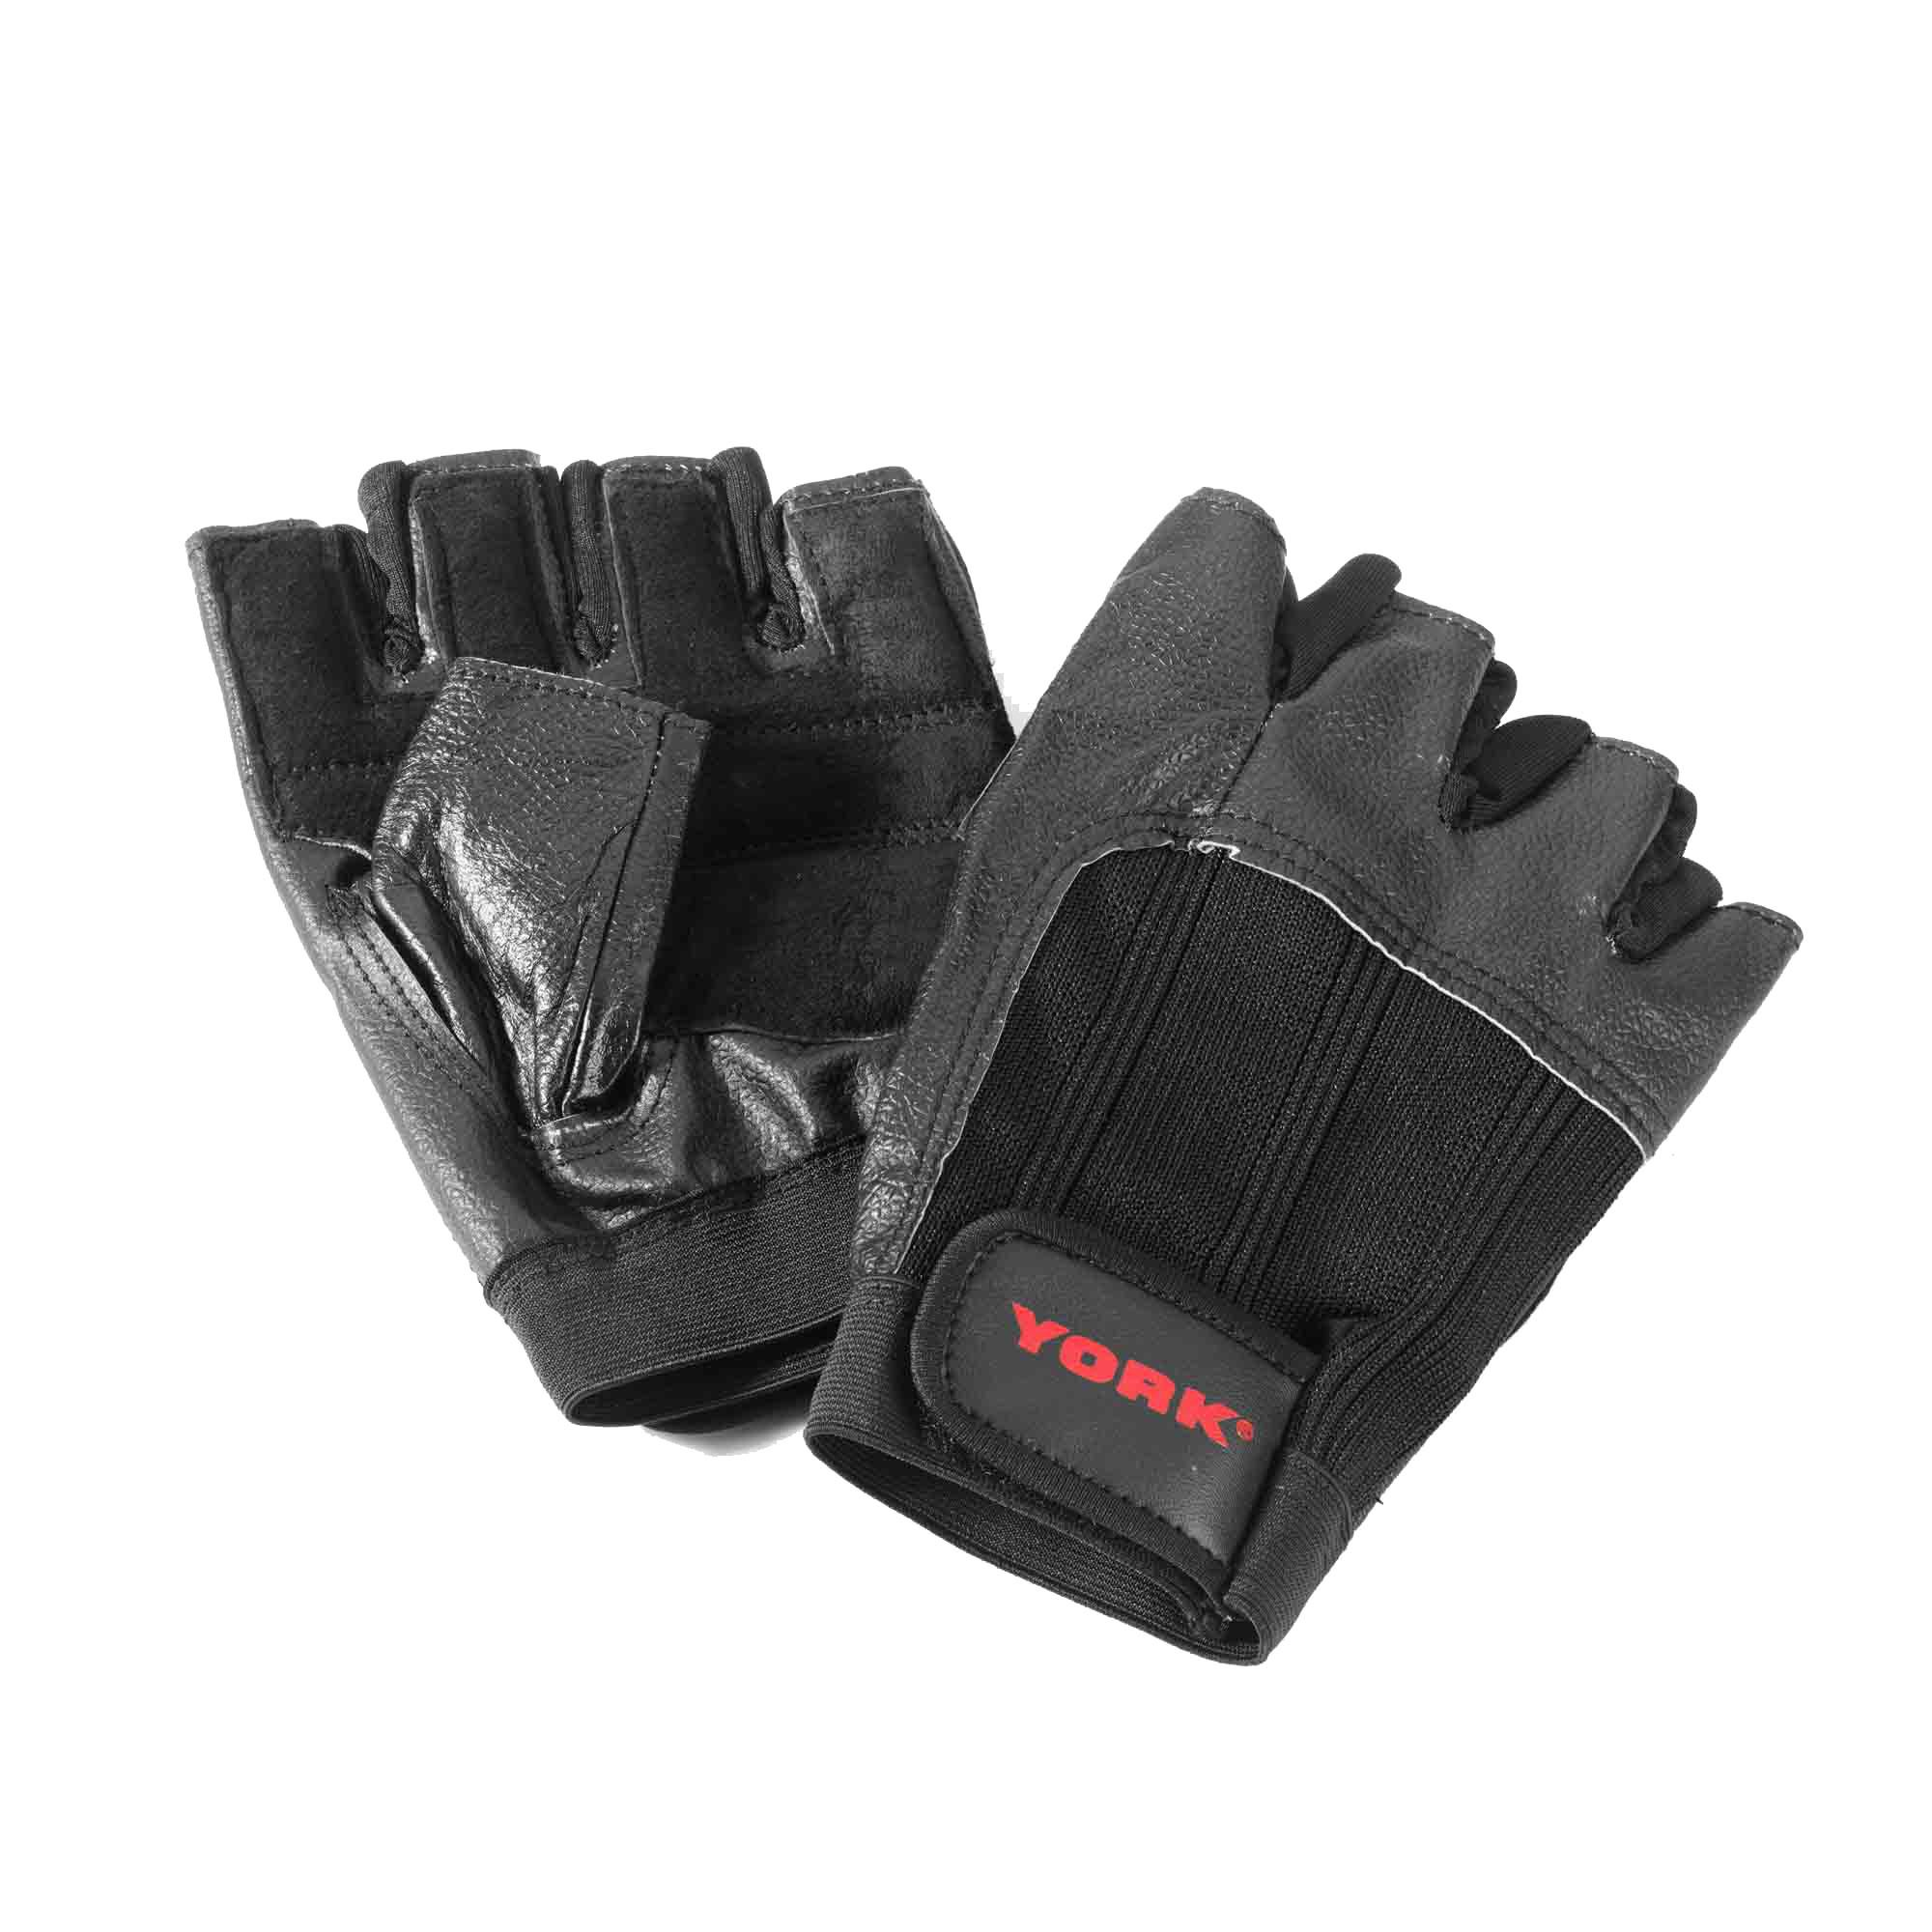 Fitness Gloves New Zealand: York Leather Weight Lifting Gloves